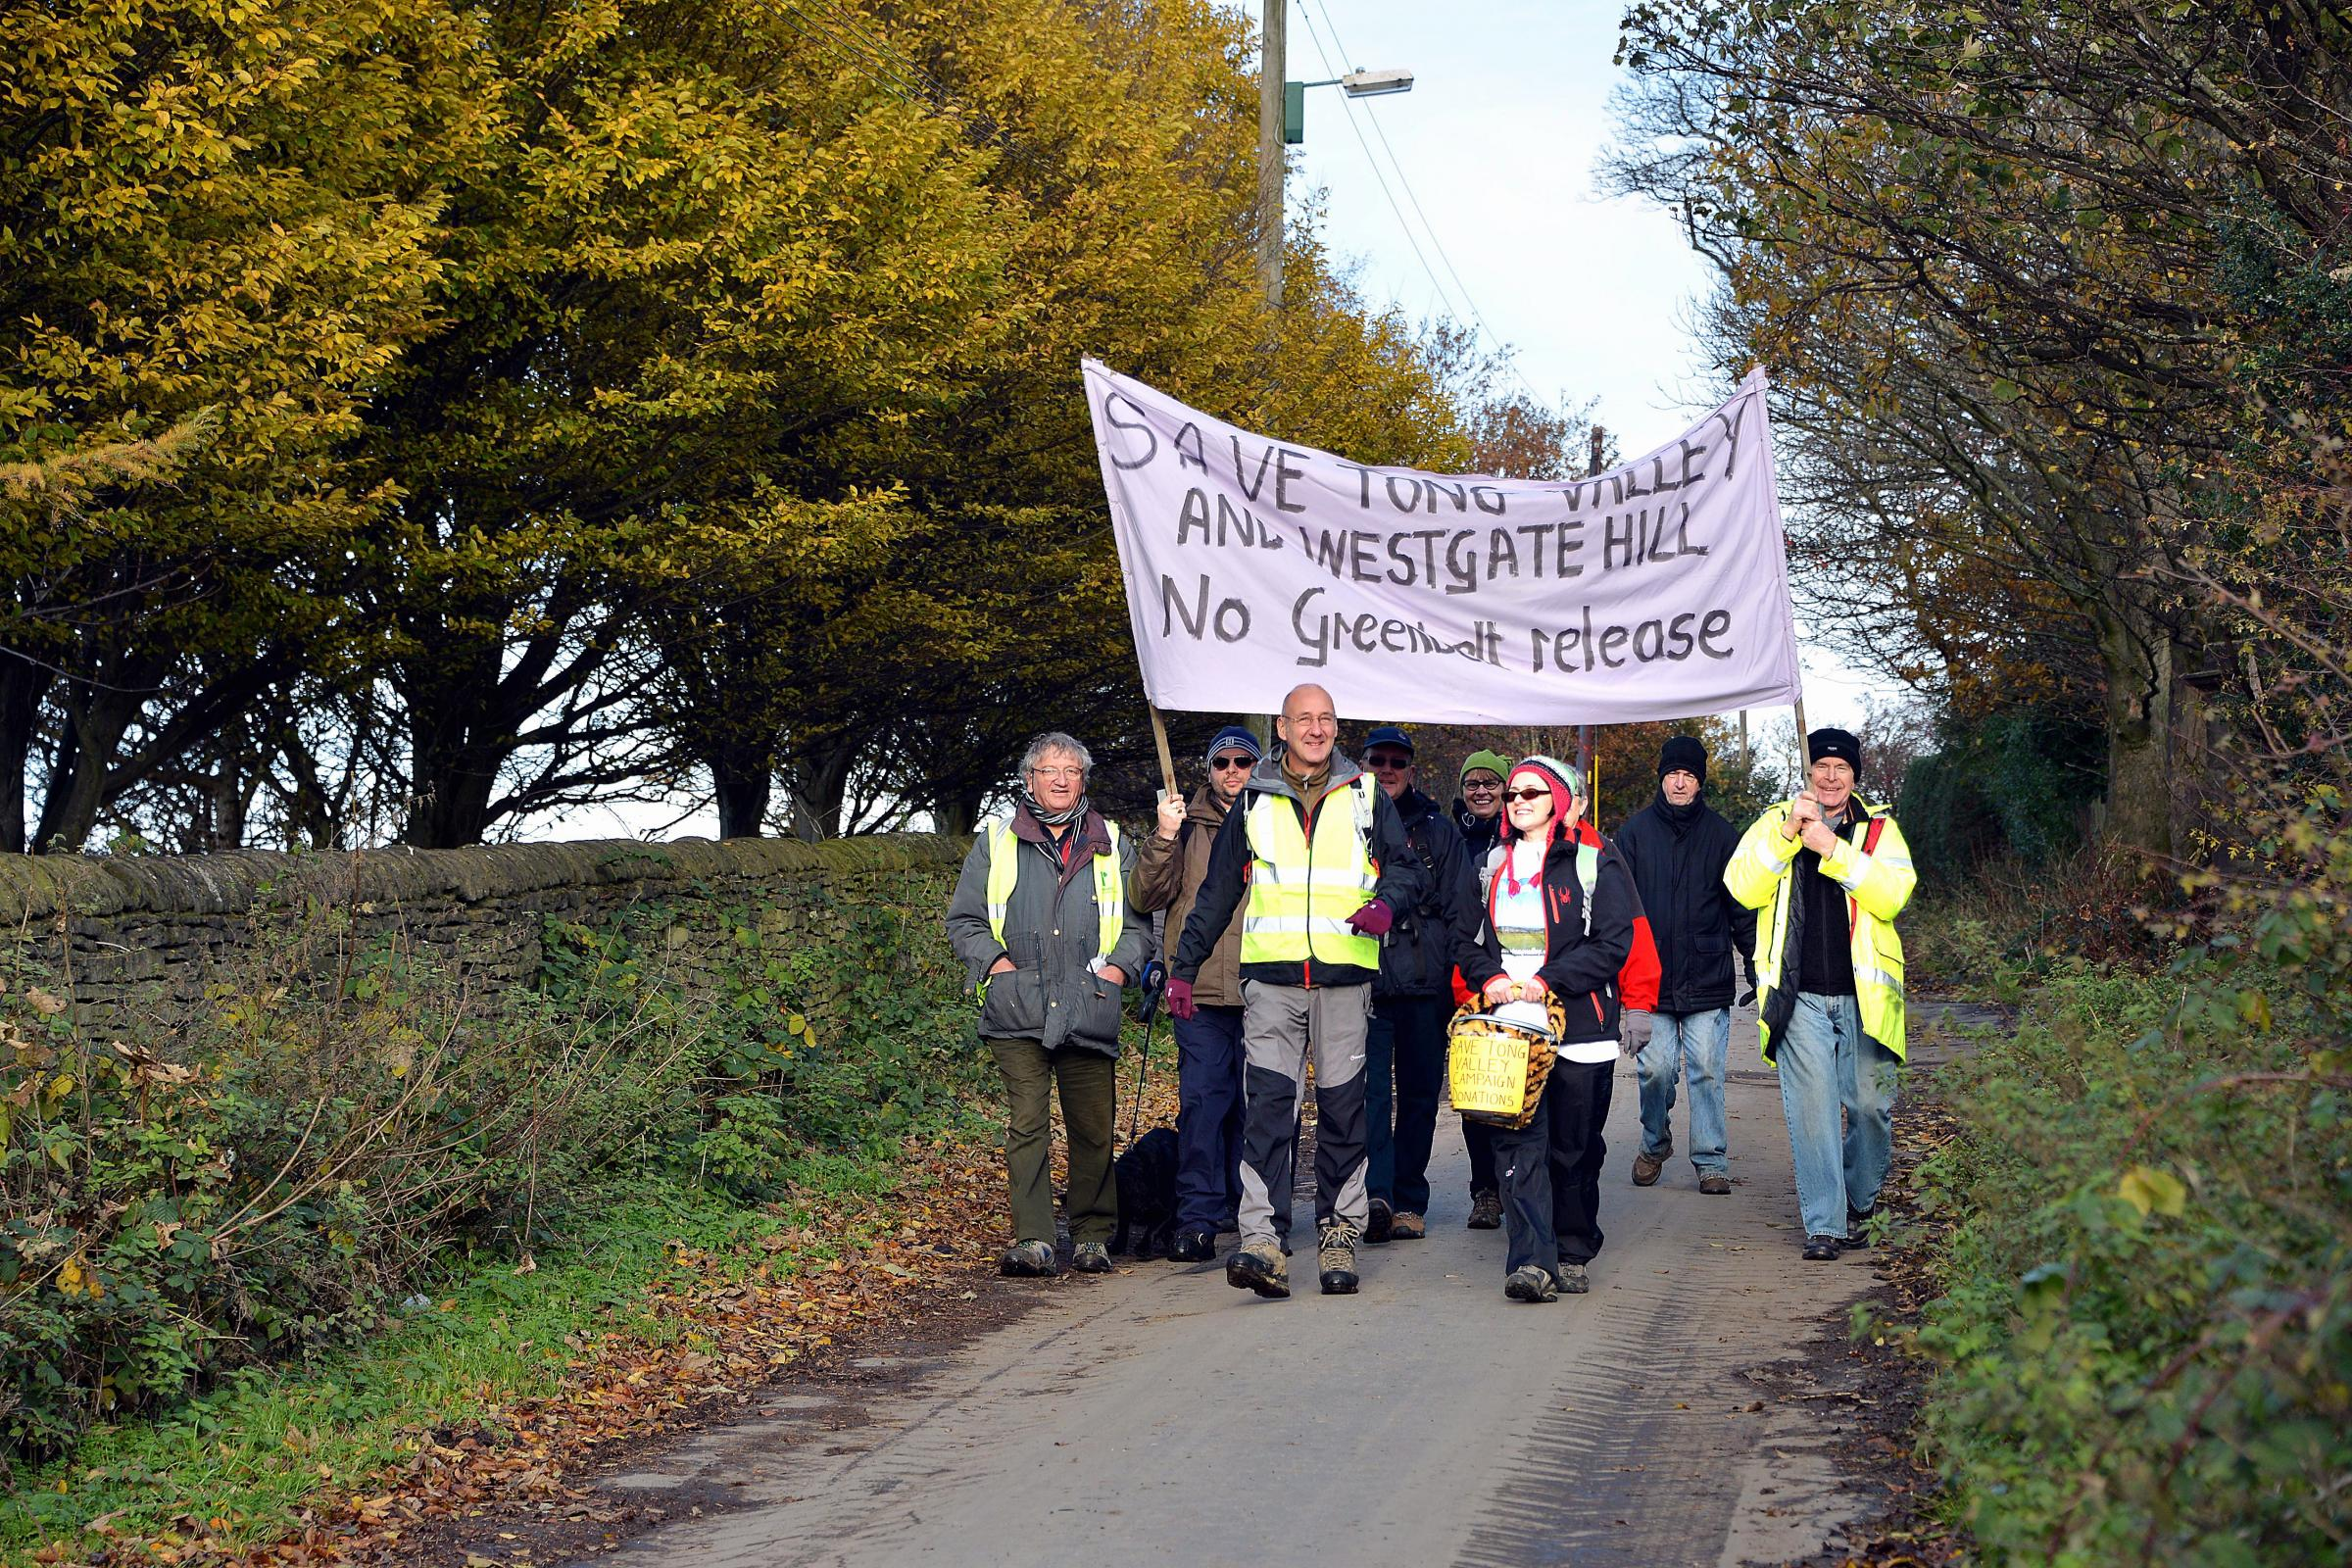 Campaigners highlight the impact of proposed developments